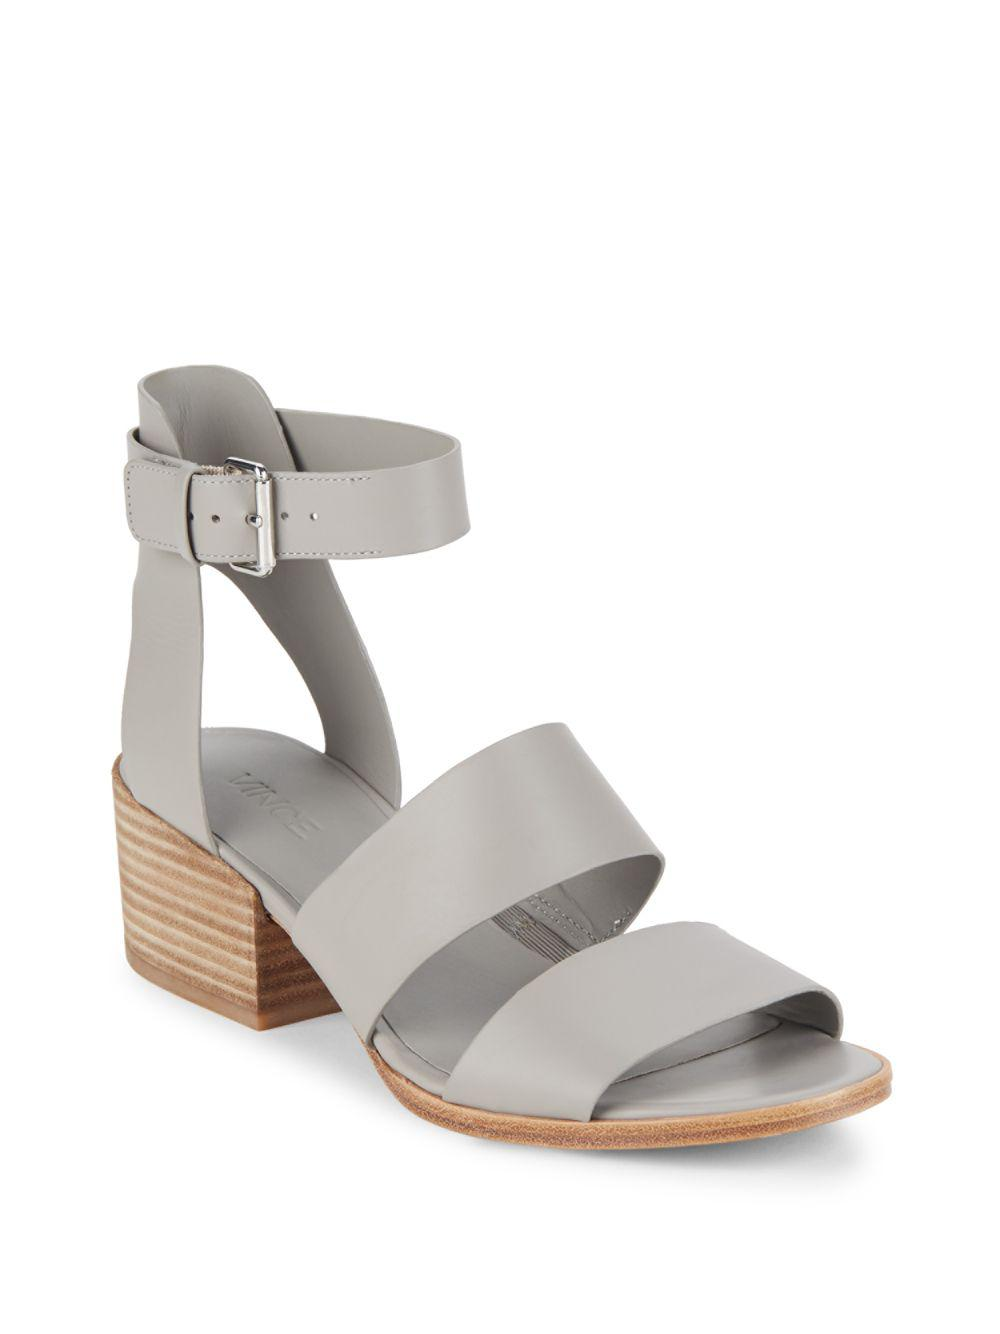 Vince. Women's Gray Frida Leather Sandals